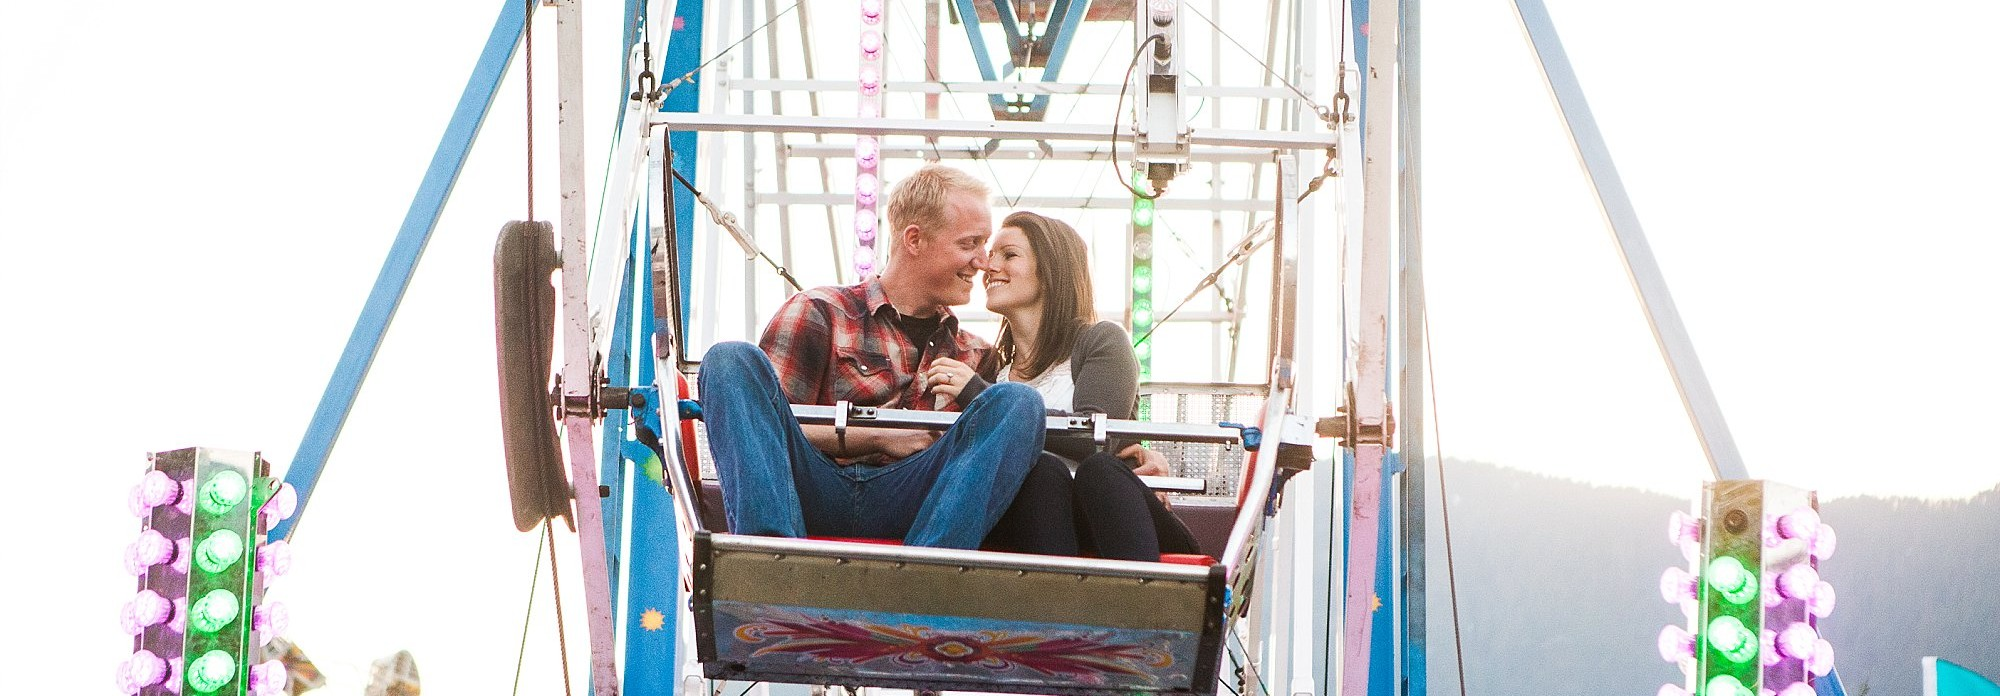 Engagement Photography, Couple on Ferris Wheel